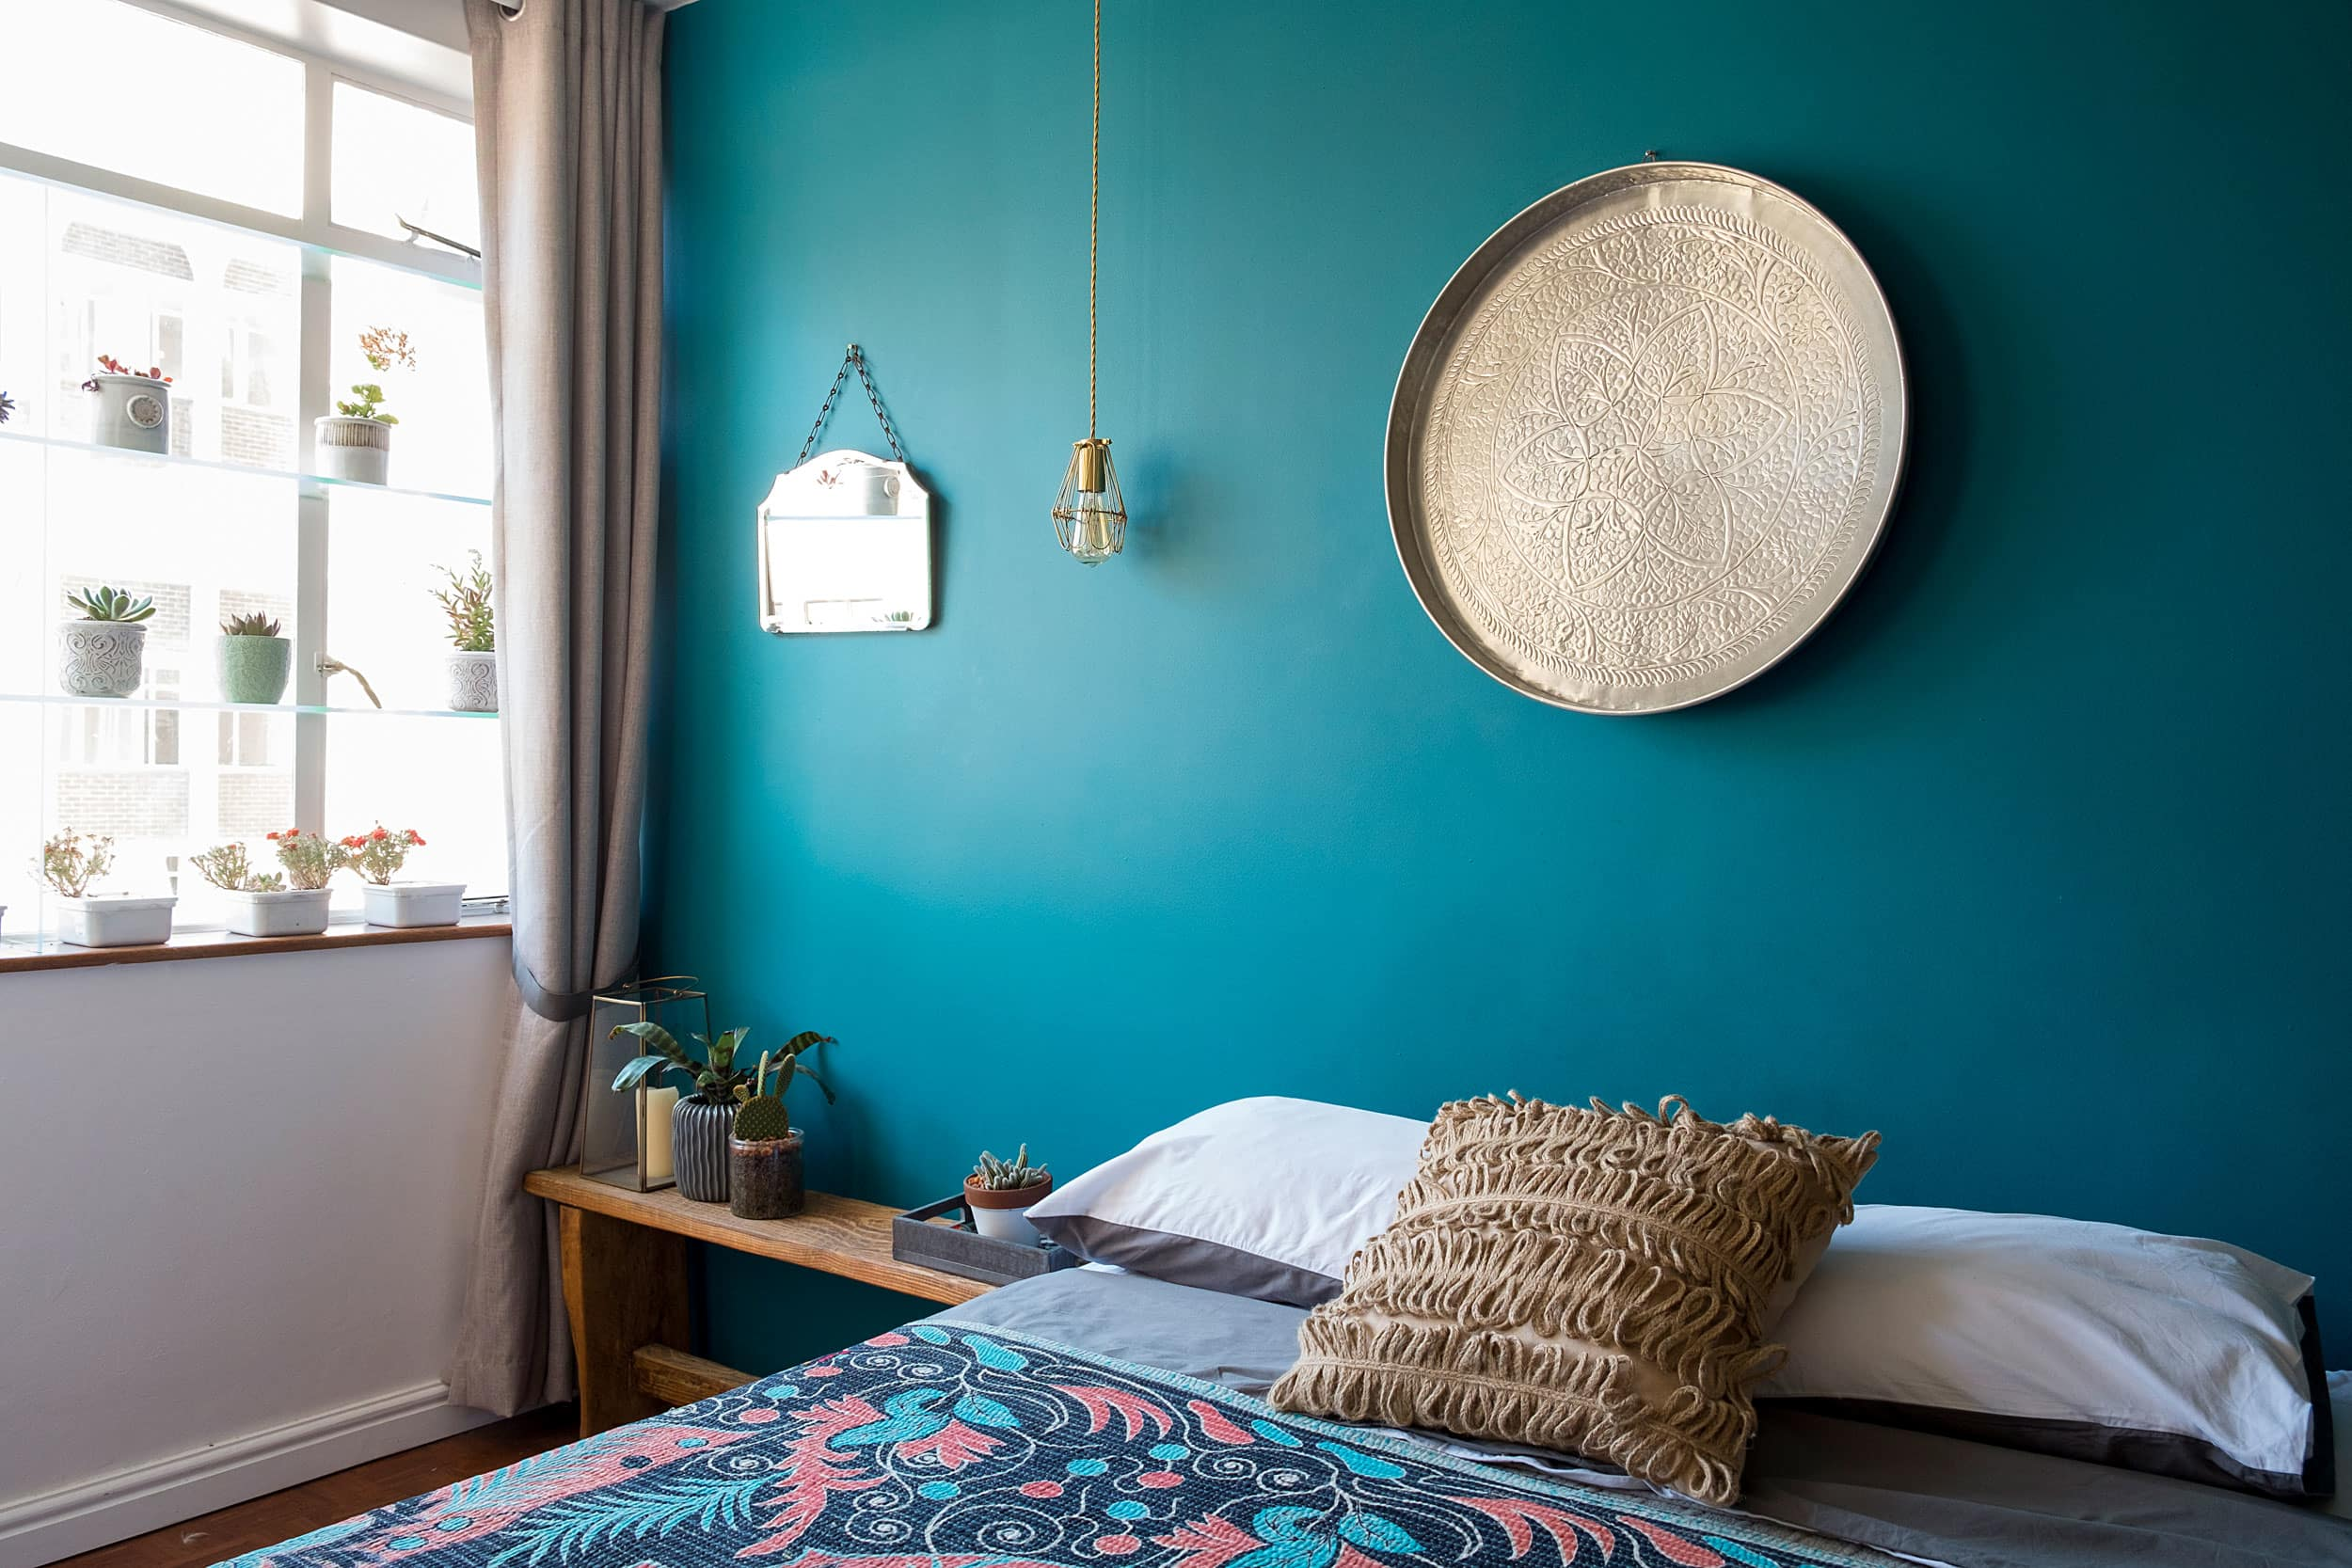 House Tour: A Small, Moroccan-Inspired Cape Town Home ...